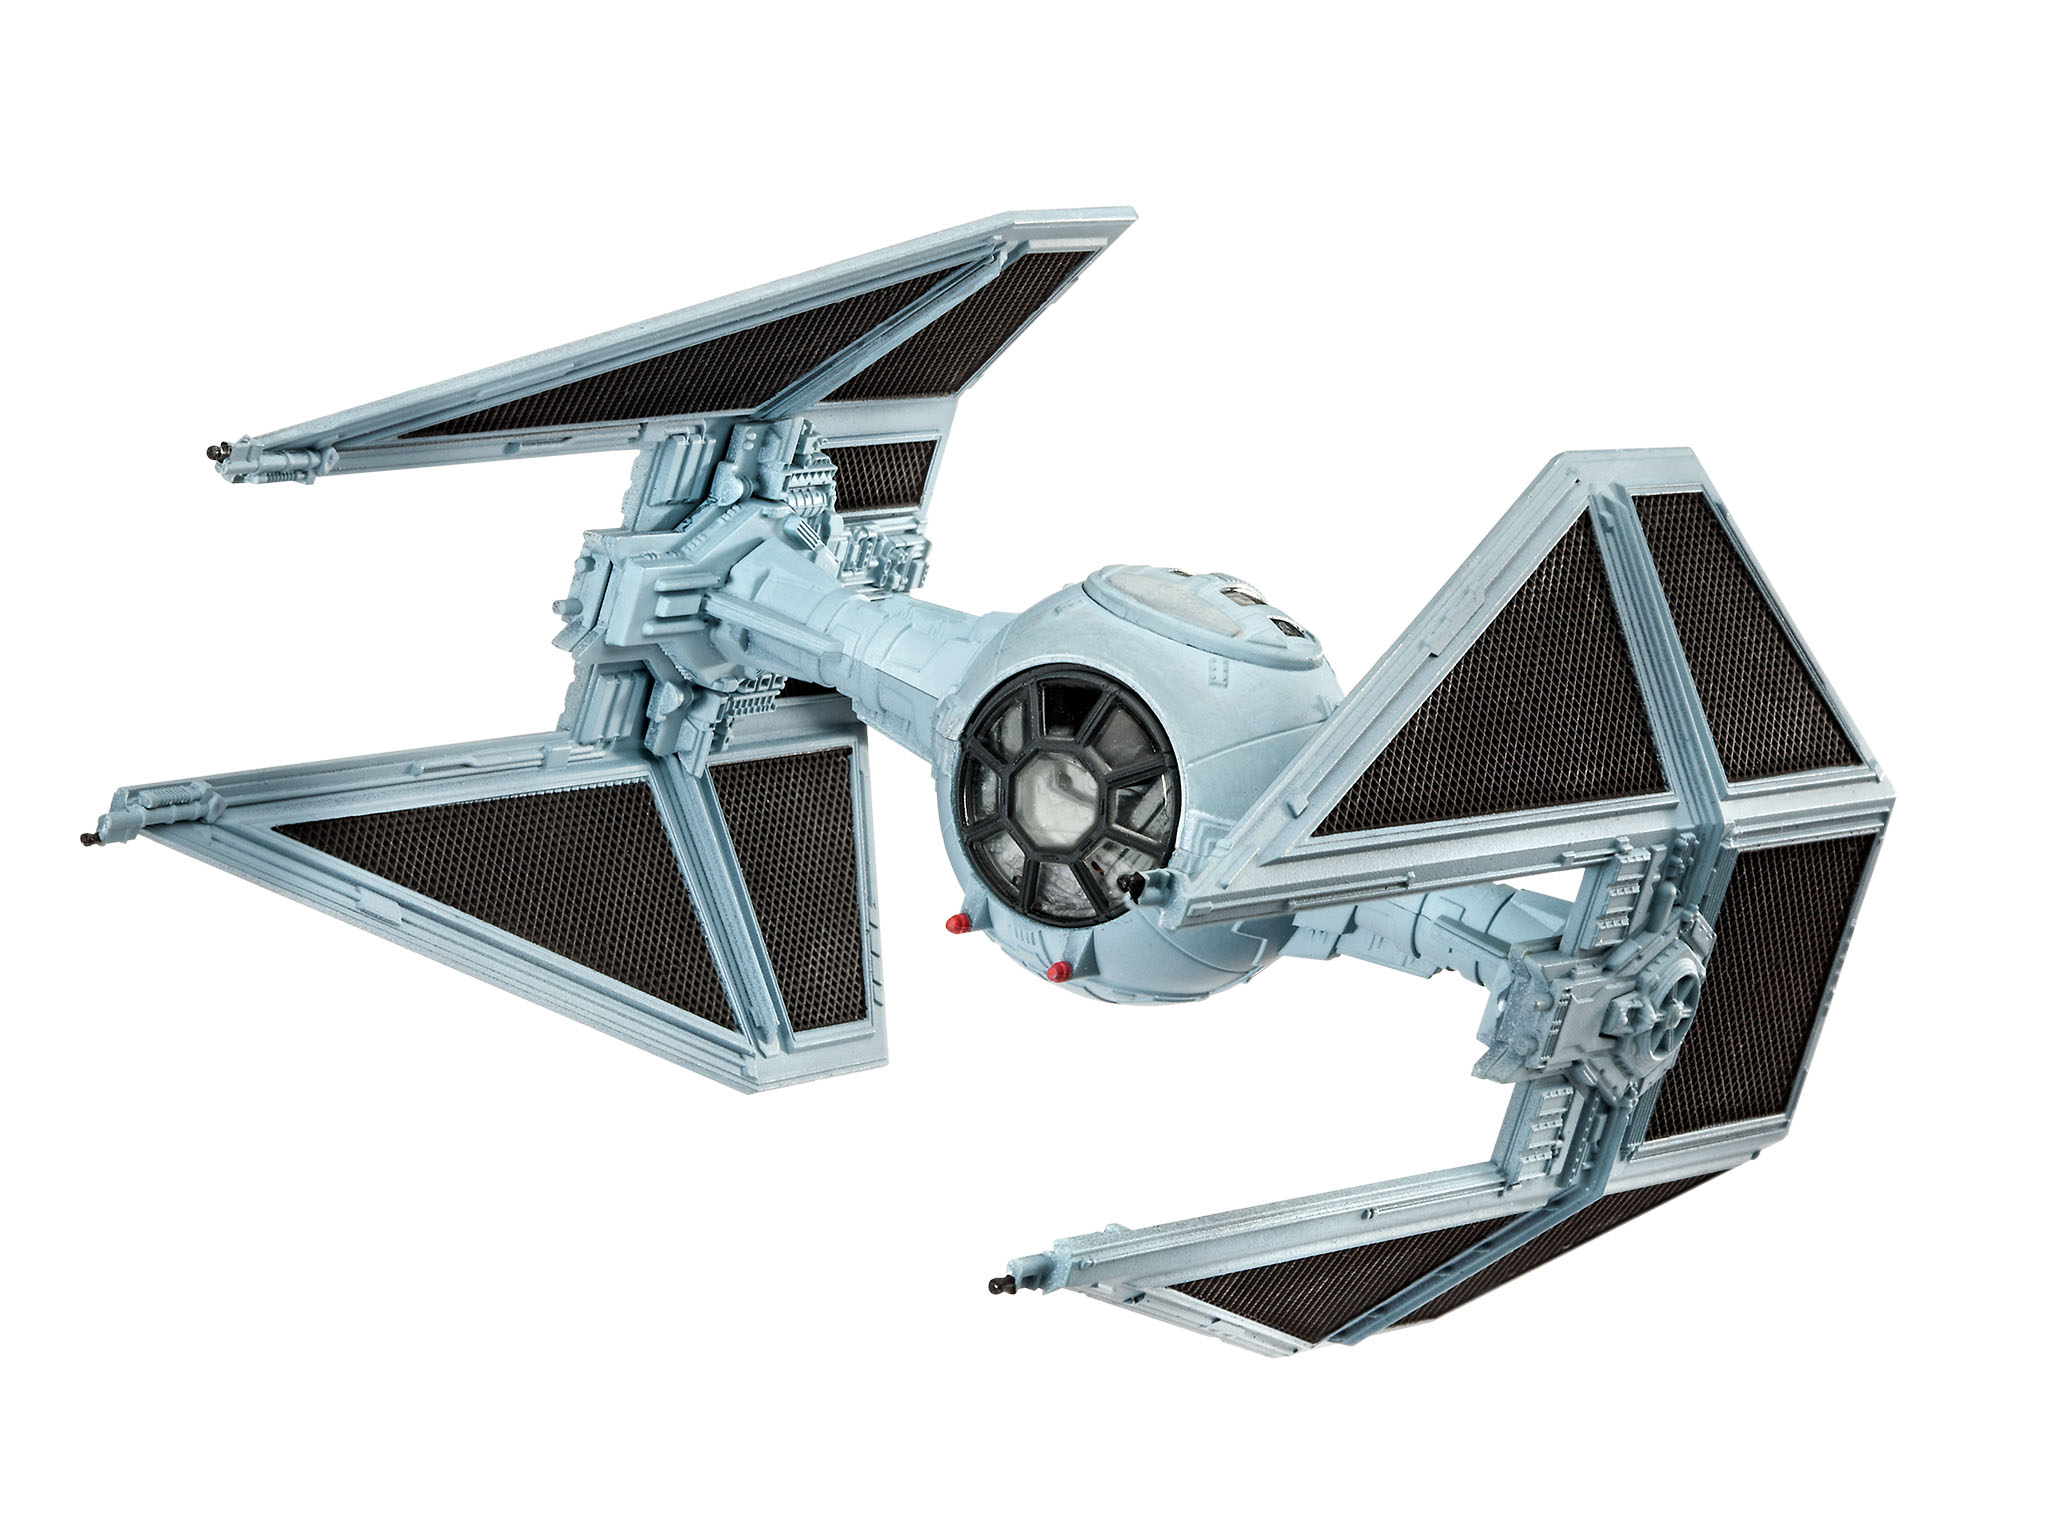 2 seater helicopter kit with Tie Interceptor Model Kit on 11632 moreover Clipart 29143 in addition 02528 furthermore 2 Seat Mini 500 Helicopter For Sale besides TIE Interceptor Model Kit.